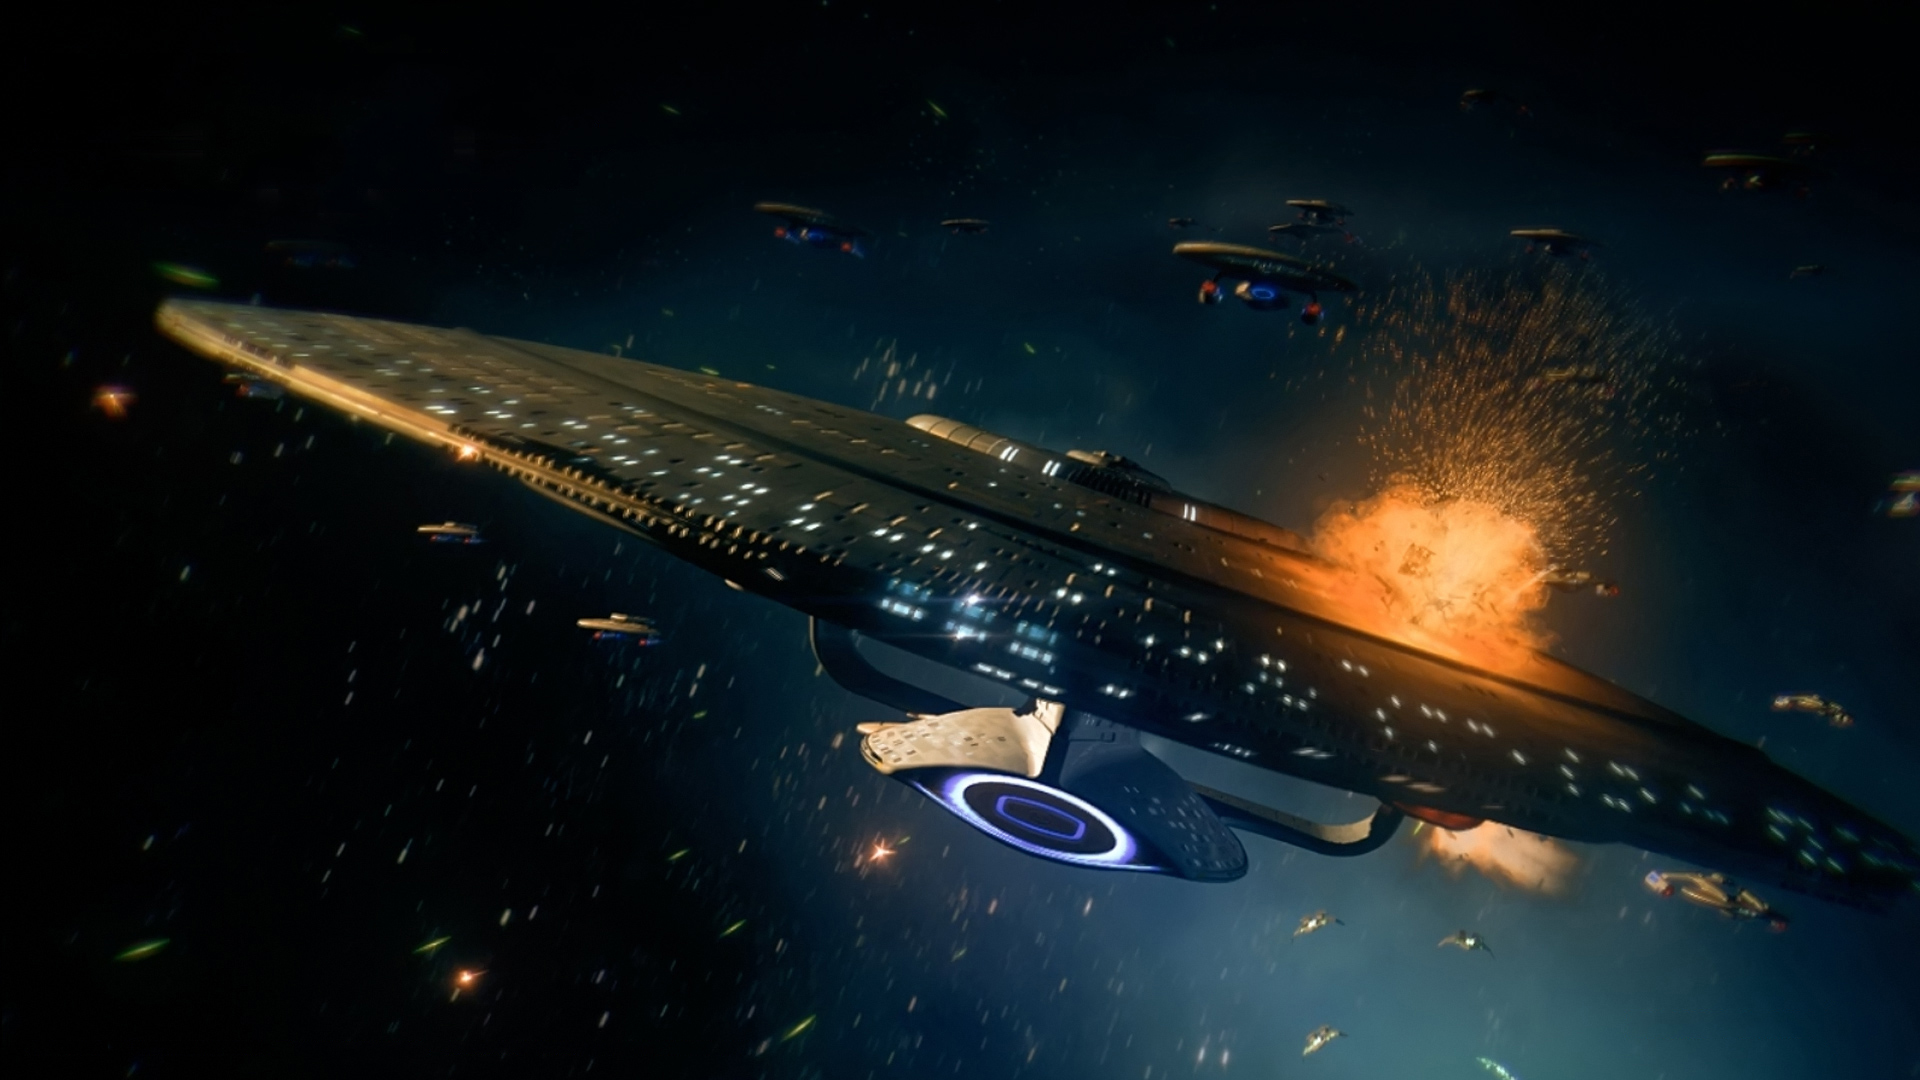 on November 9 2015 By Stephen Comments Off on Star Trek HD Wallpapers 1920x1080